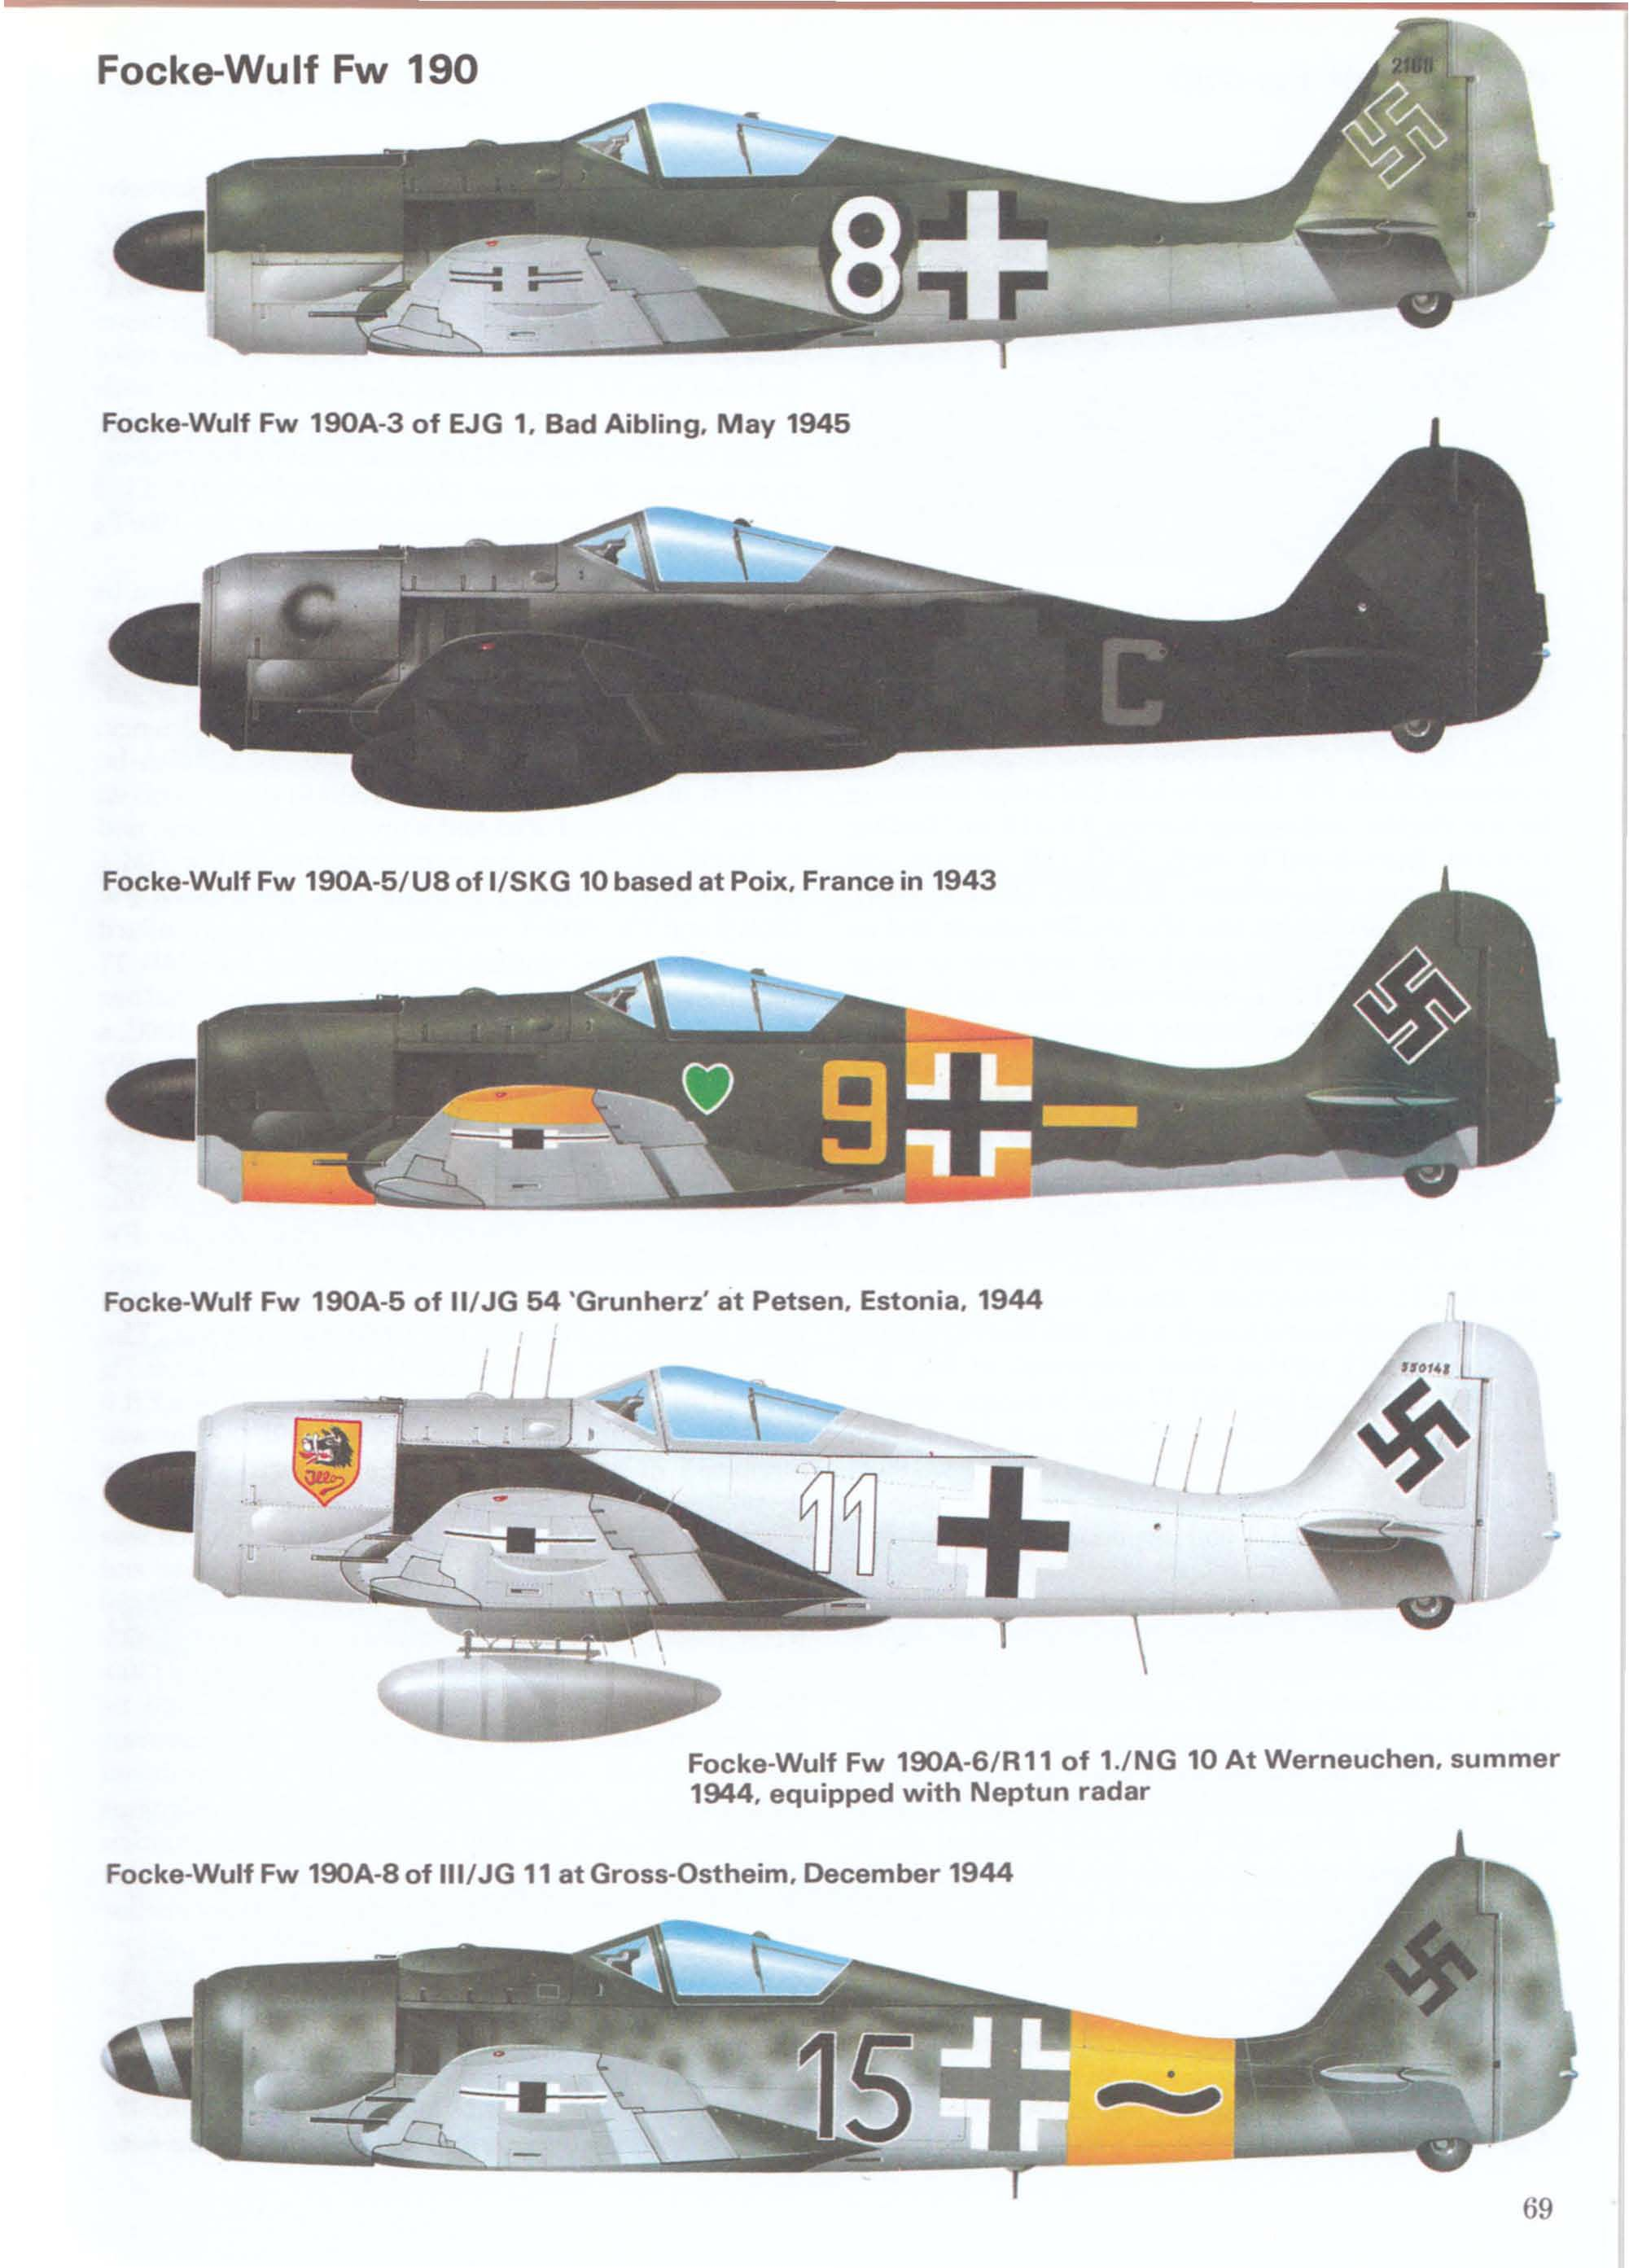 Focke-Wulf Fw 190s in a variety of configurations.